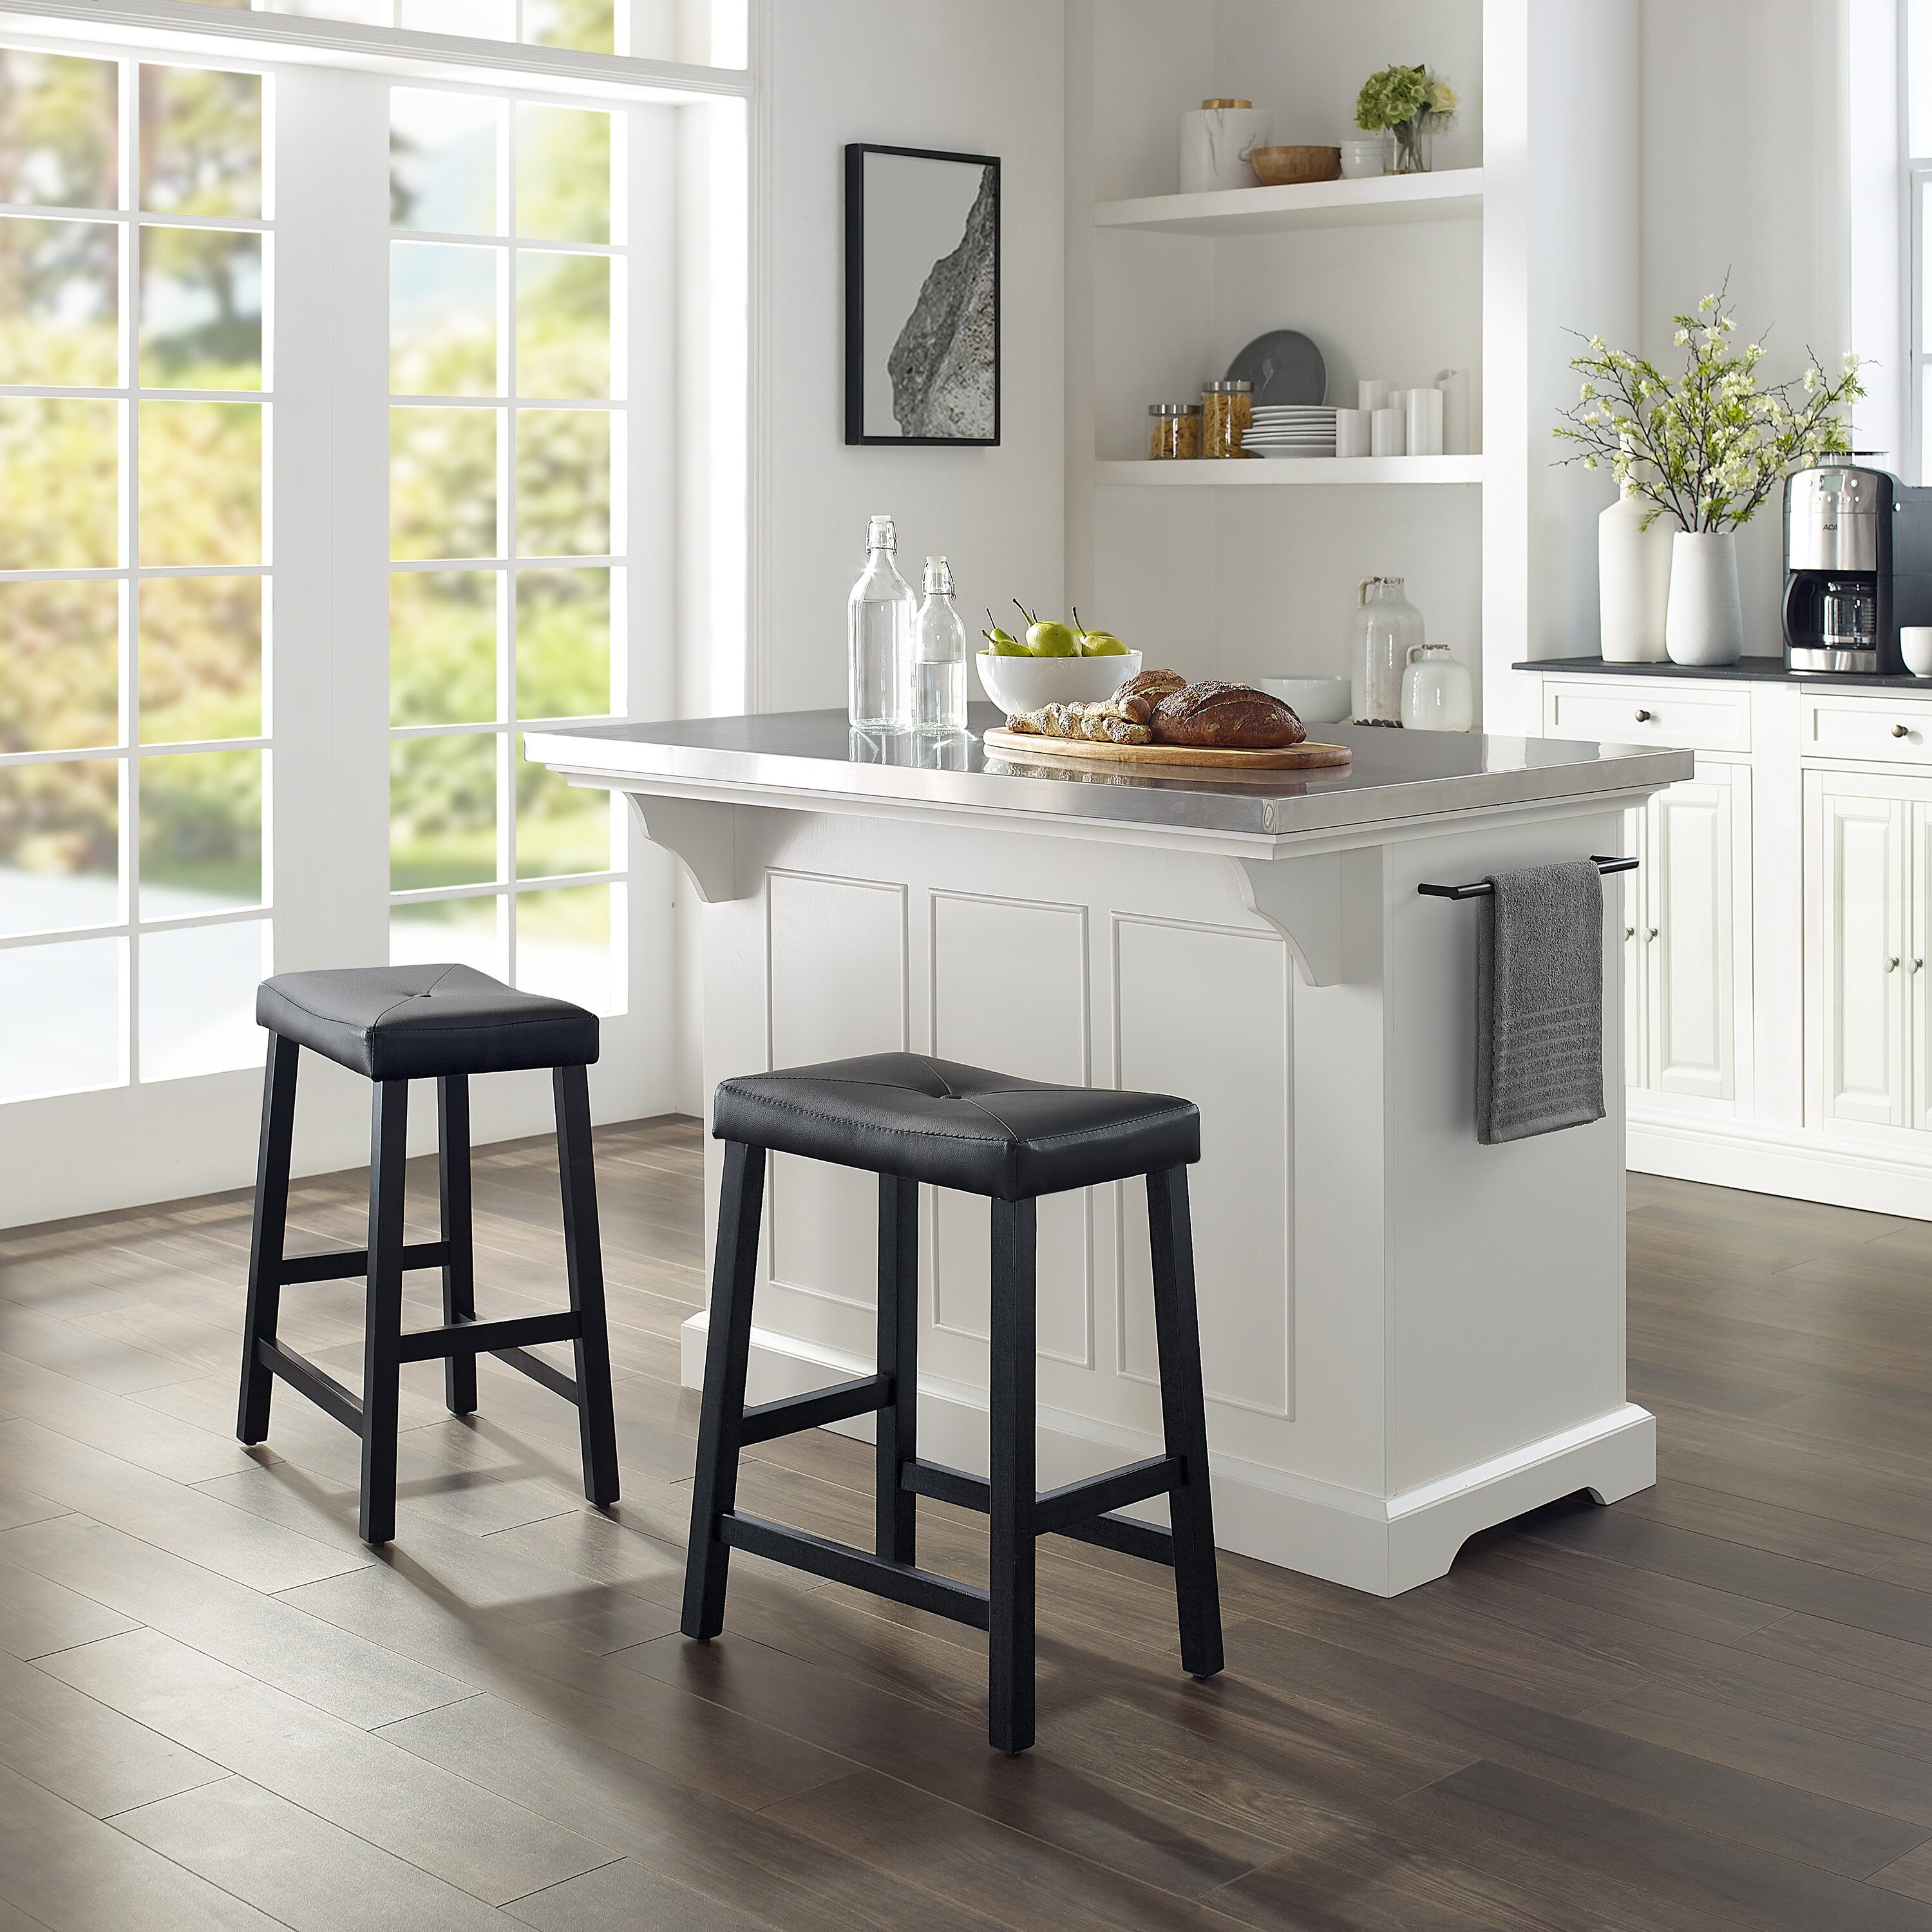 Gael Kitchen Island Set with Stainless Steel Top